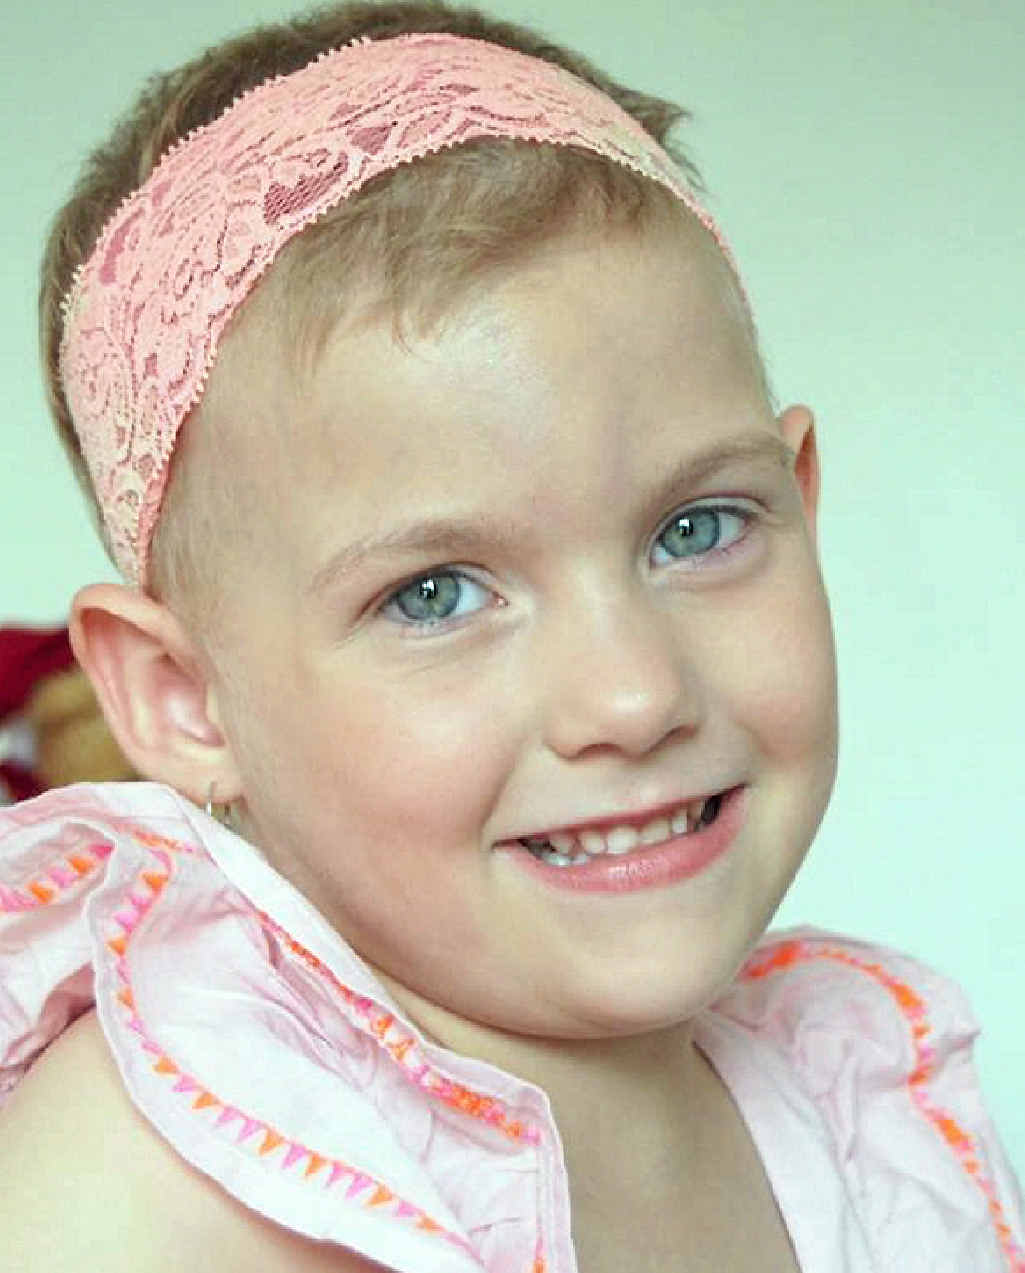 Allira's tumour reappeared in her right lung after she was declared cancer-free earlier this year.